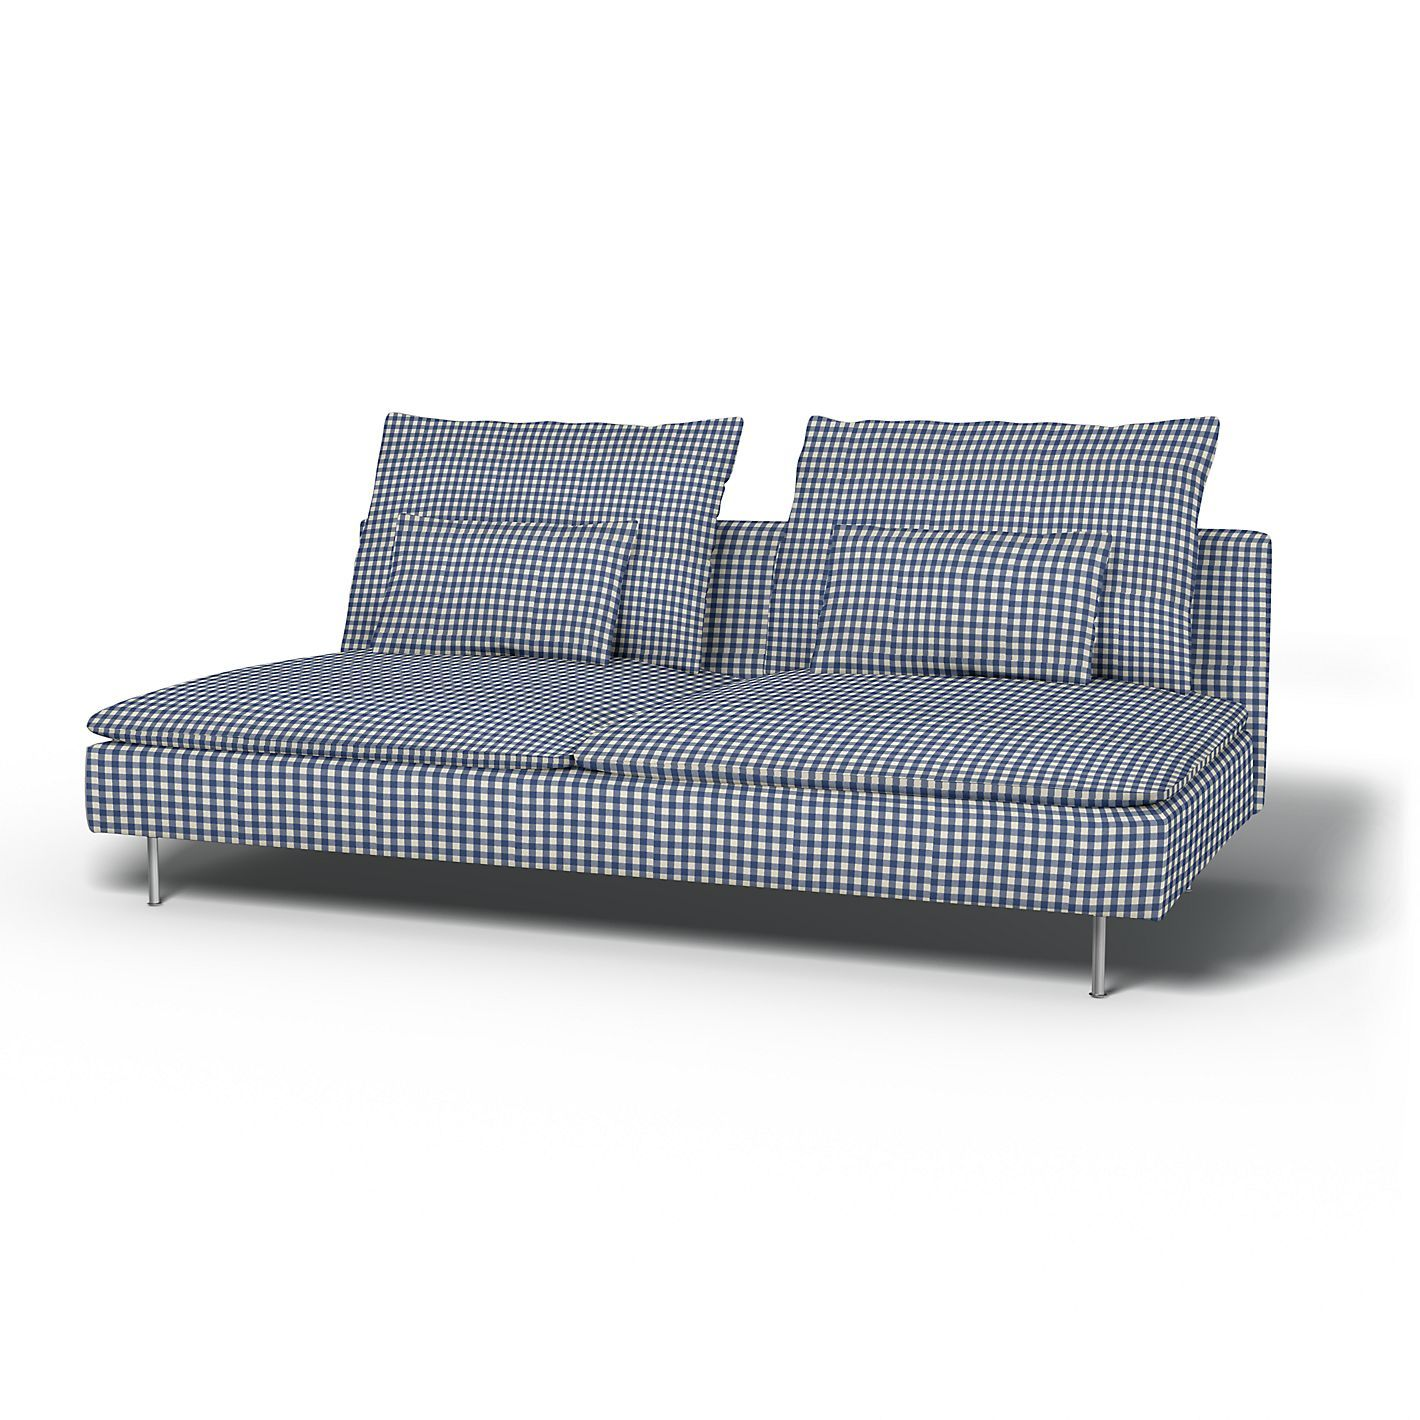 Outstanding Soderhamn 3 Seat Section Sofa Cover Renovations Sofa Theyellowbook Wood Chair Design Ideas Theyellowbookinfo